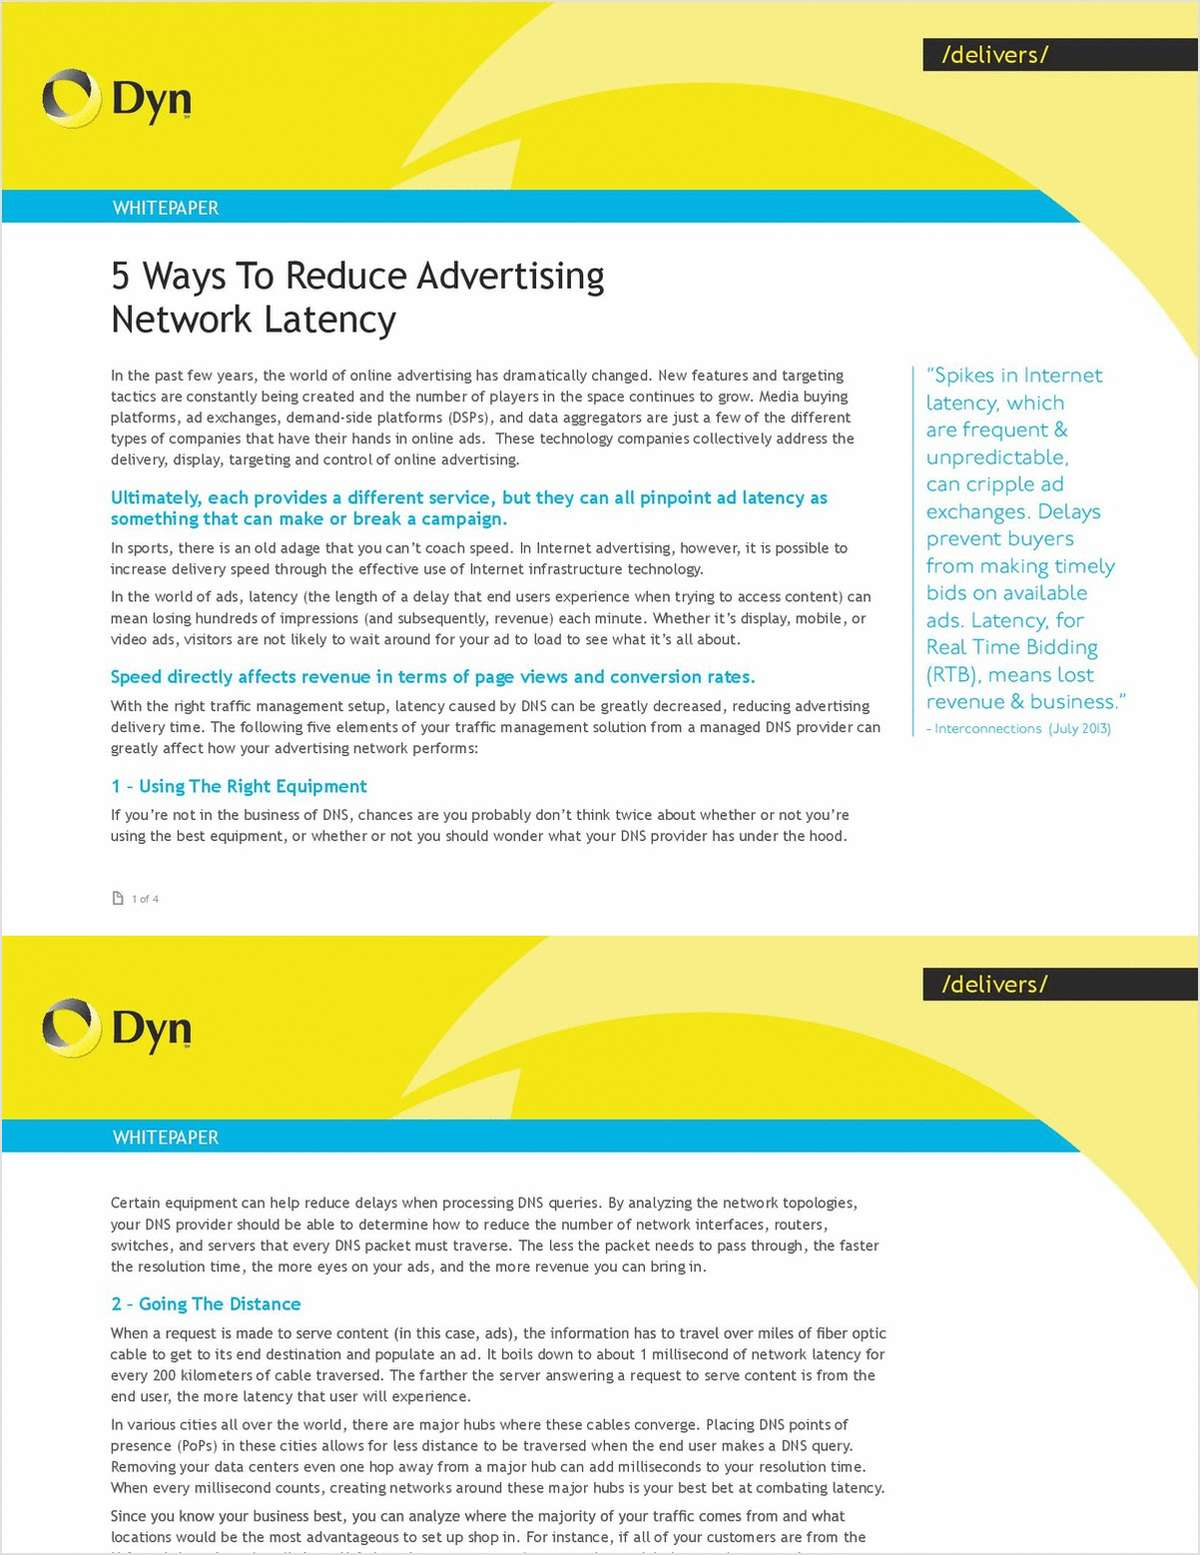 5 Ways to Reduce Advertising Network Latency